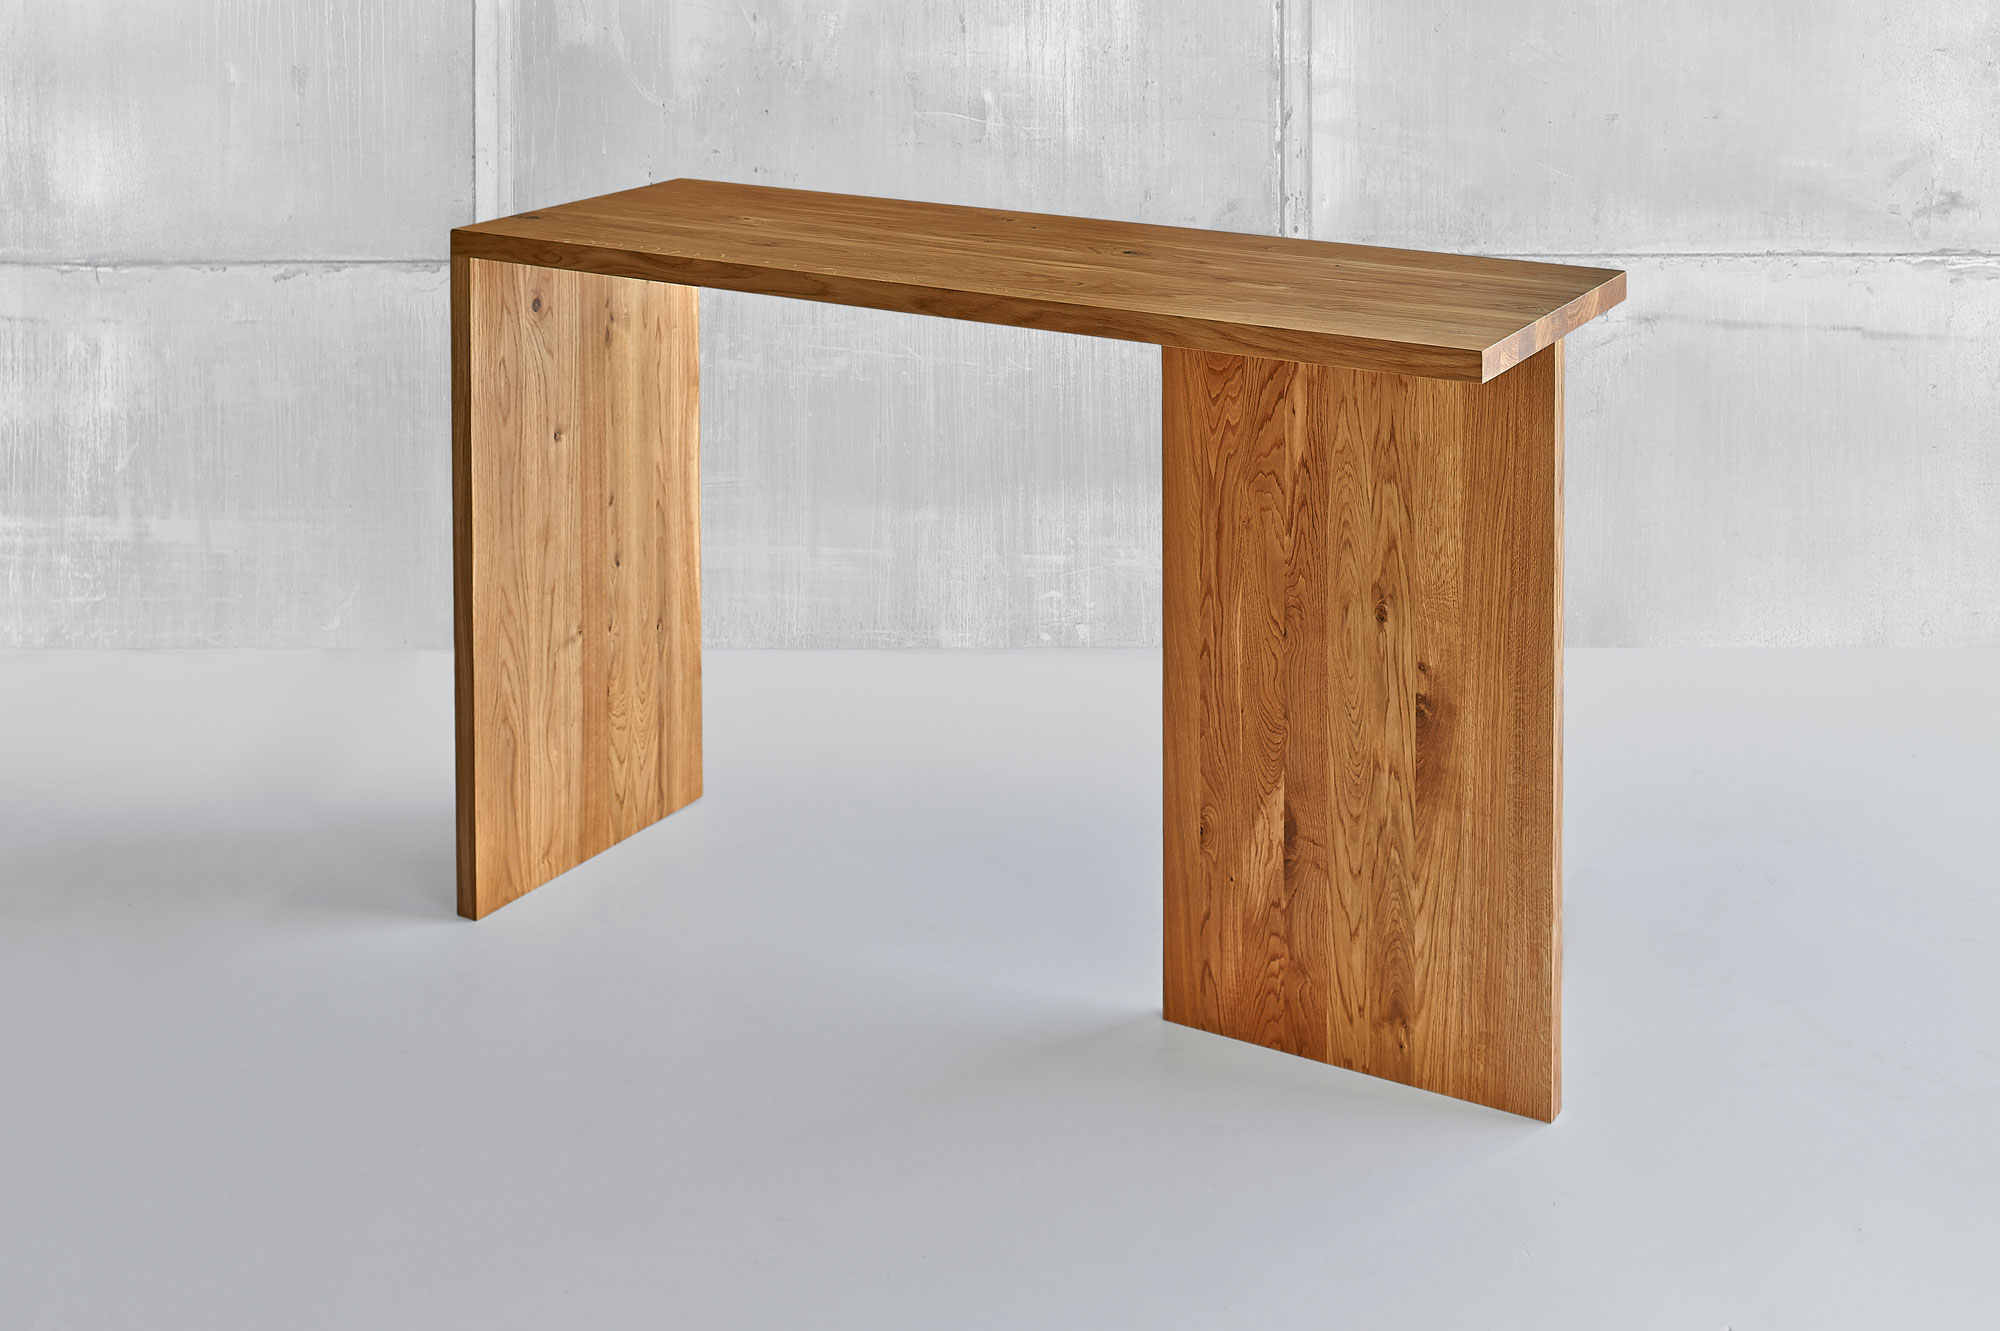 Solid Wood Console Table MENA CONSOLE 1460 custom made in solid wood by vitamin design